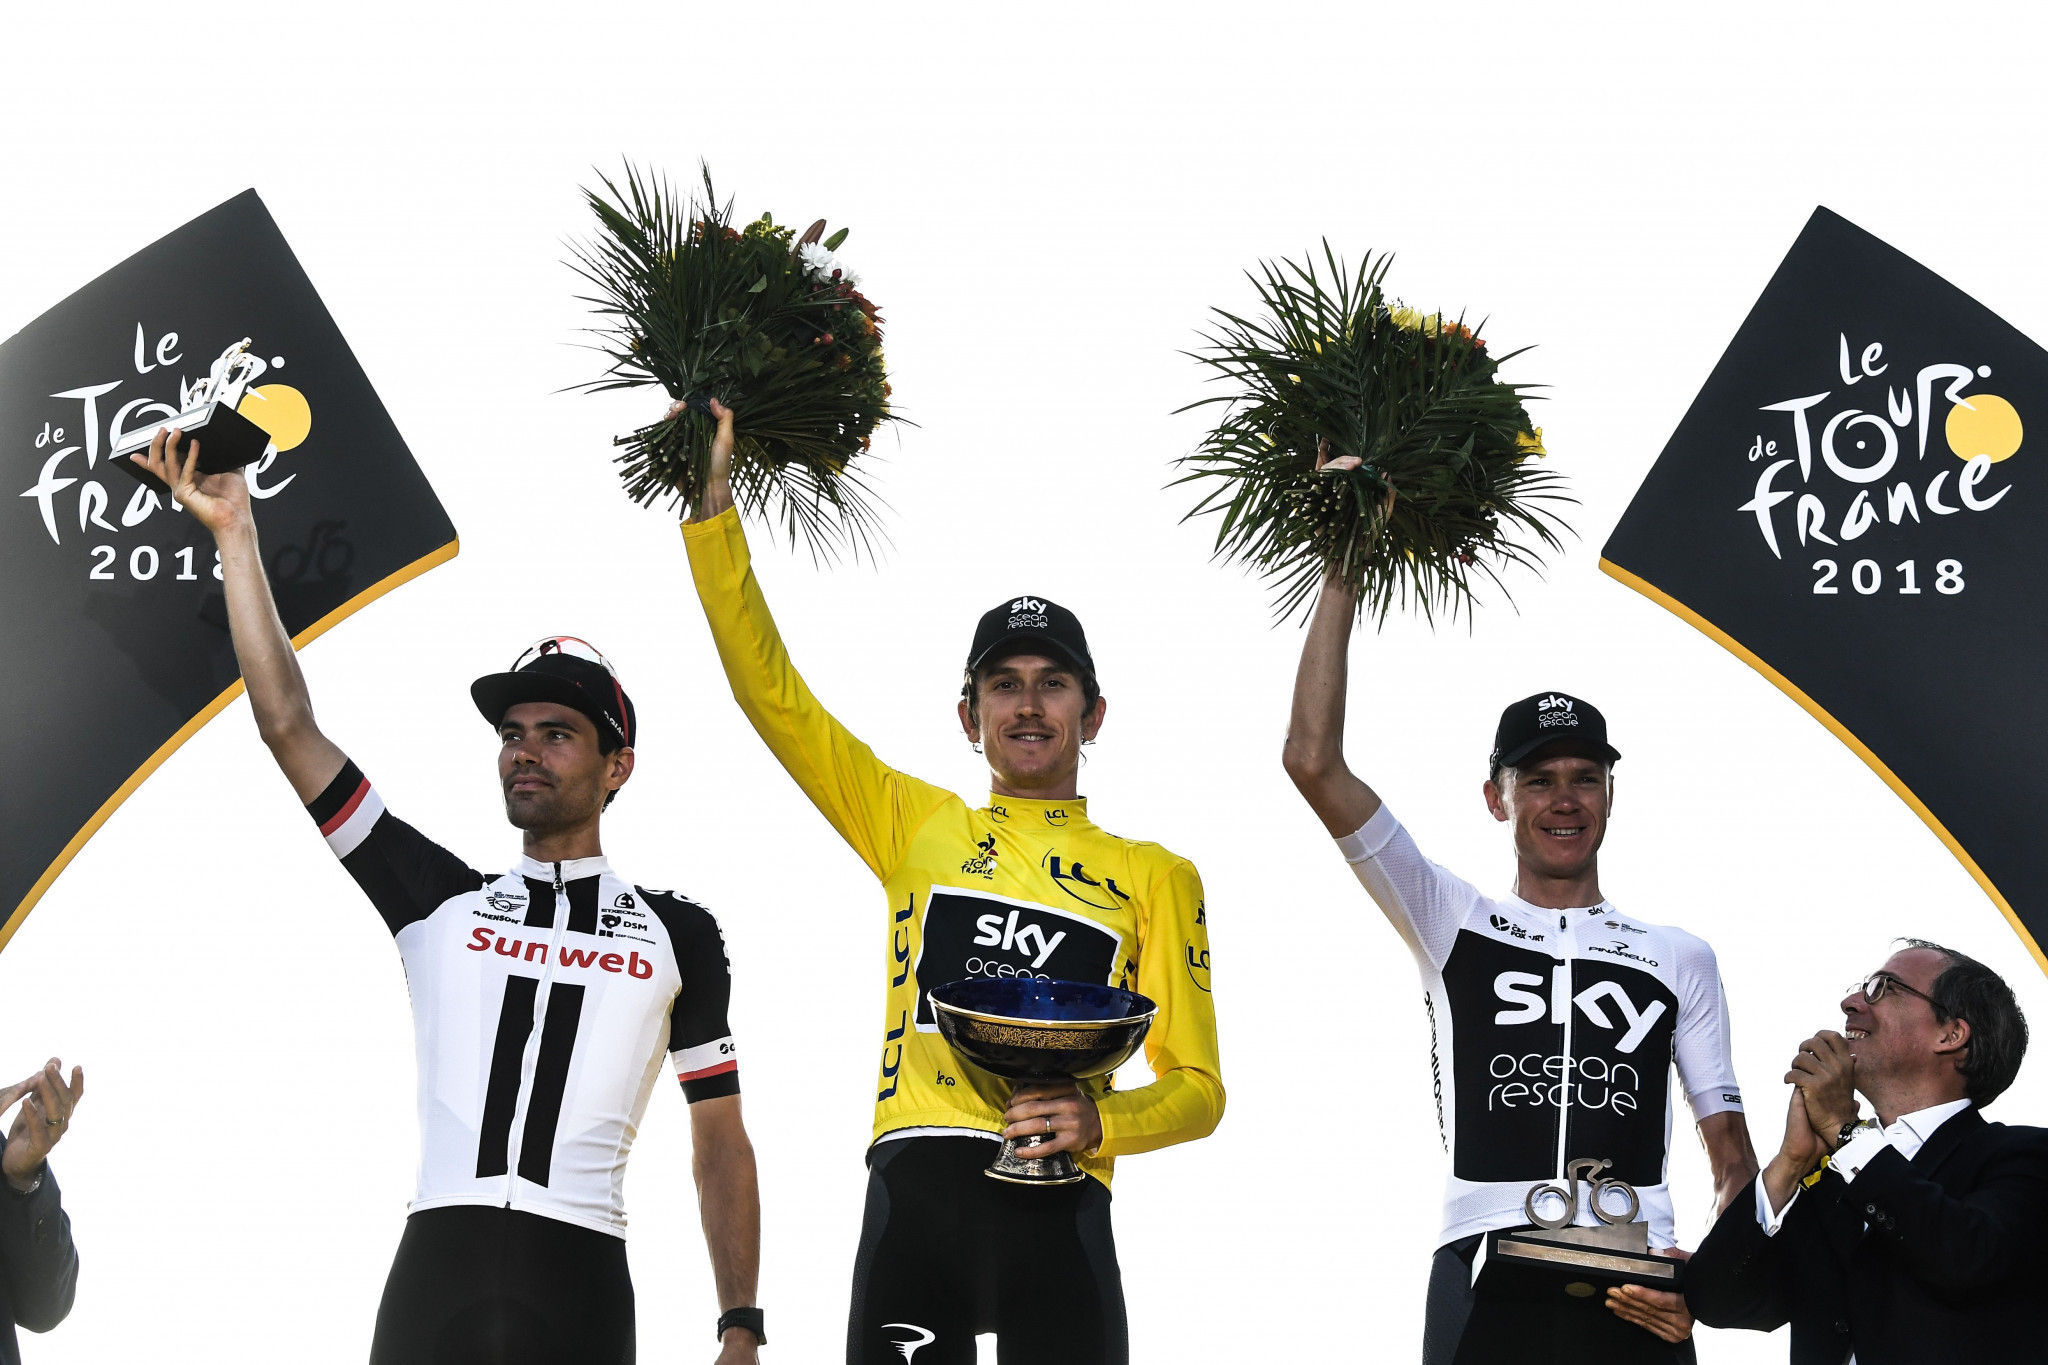 Tour De France 2018 winner Geraint Thomas of Britain with the trophy which was stolen from The Cycle Show in Birmingham in September ©Getty Images